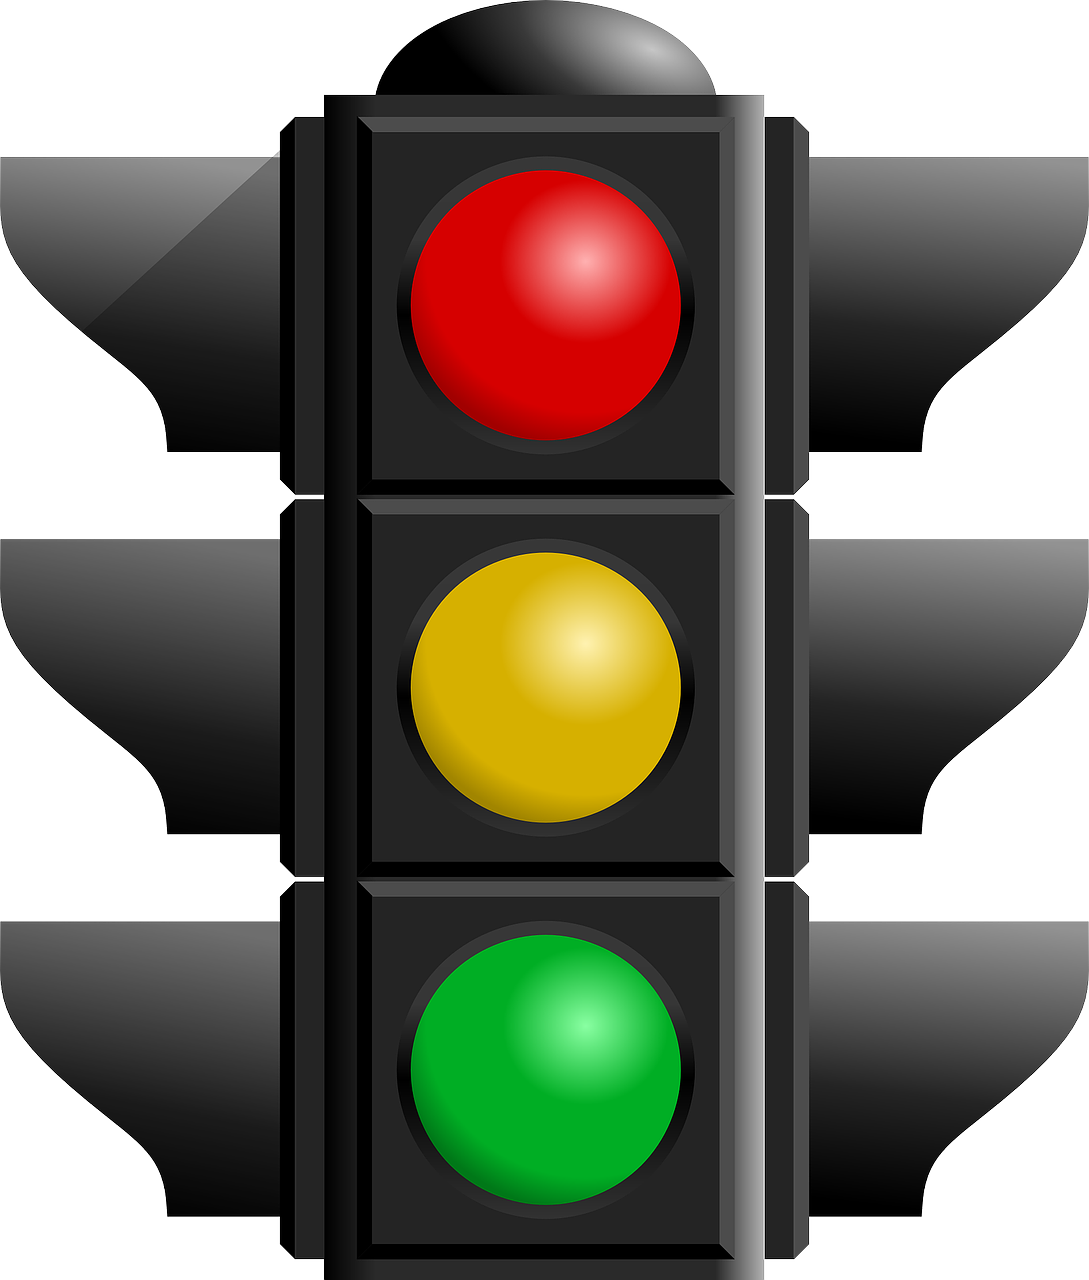 traffic-light-24177_1280